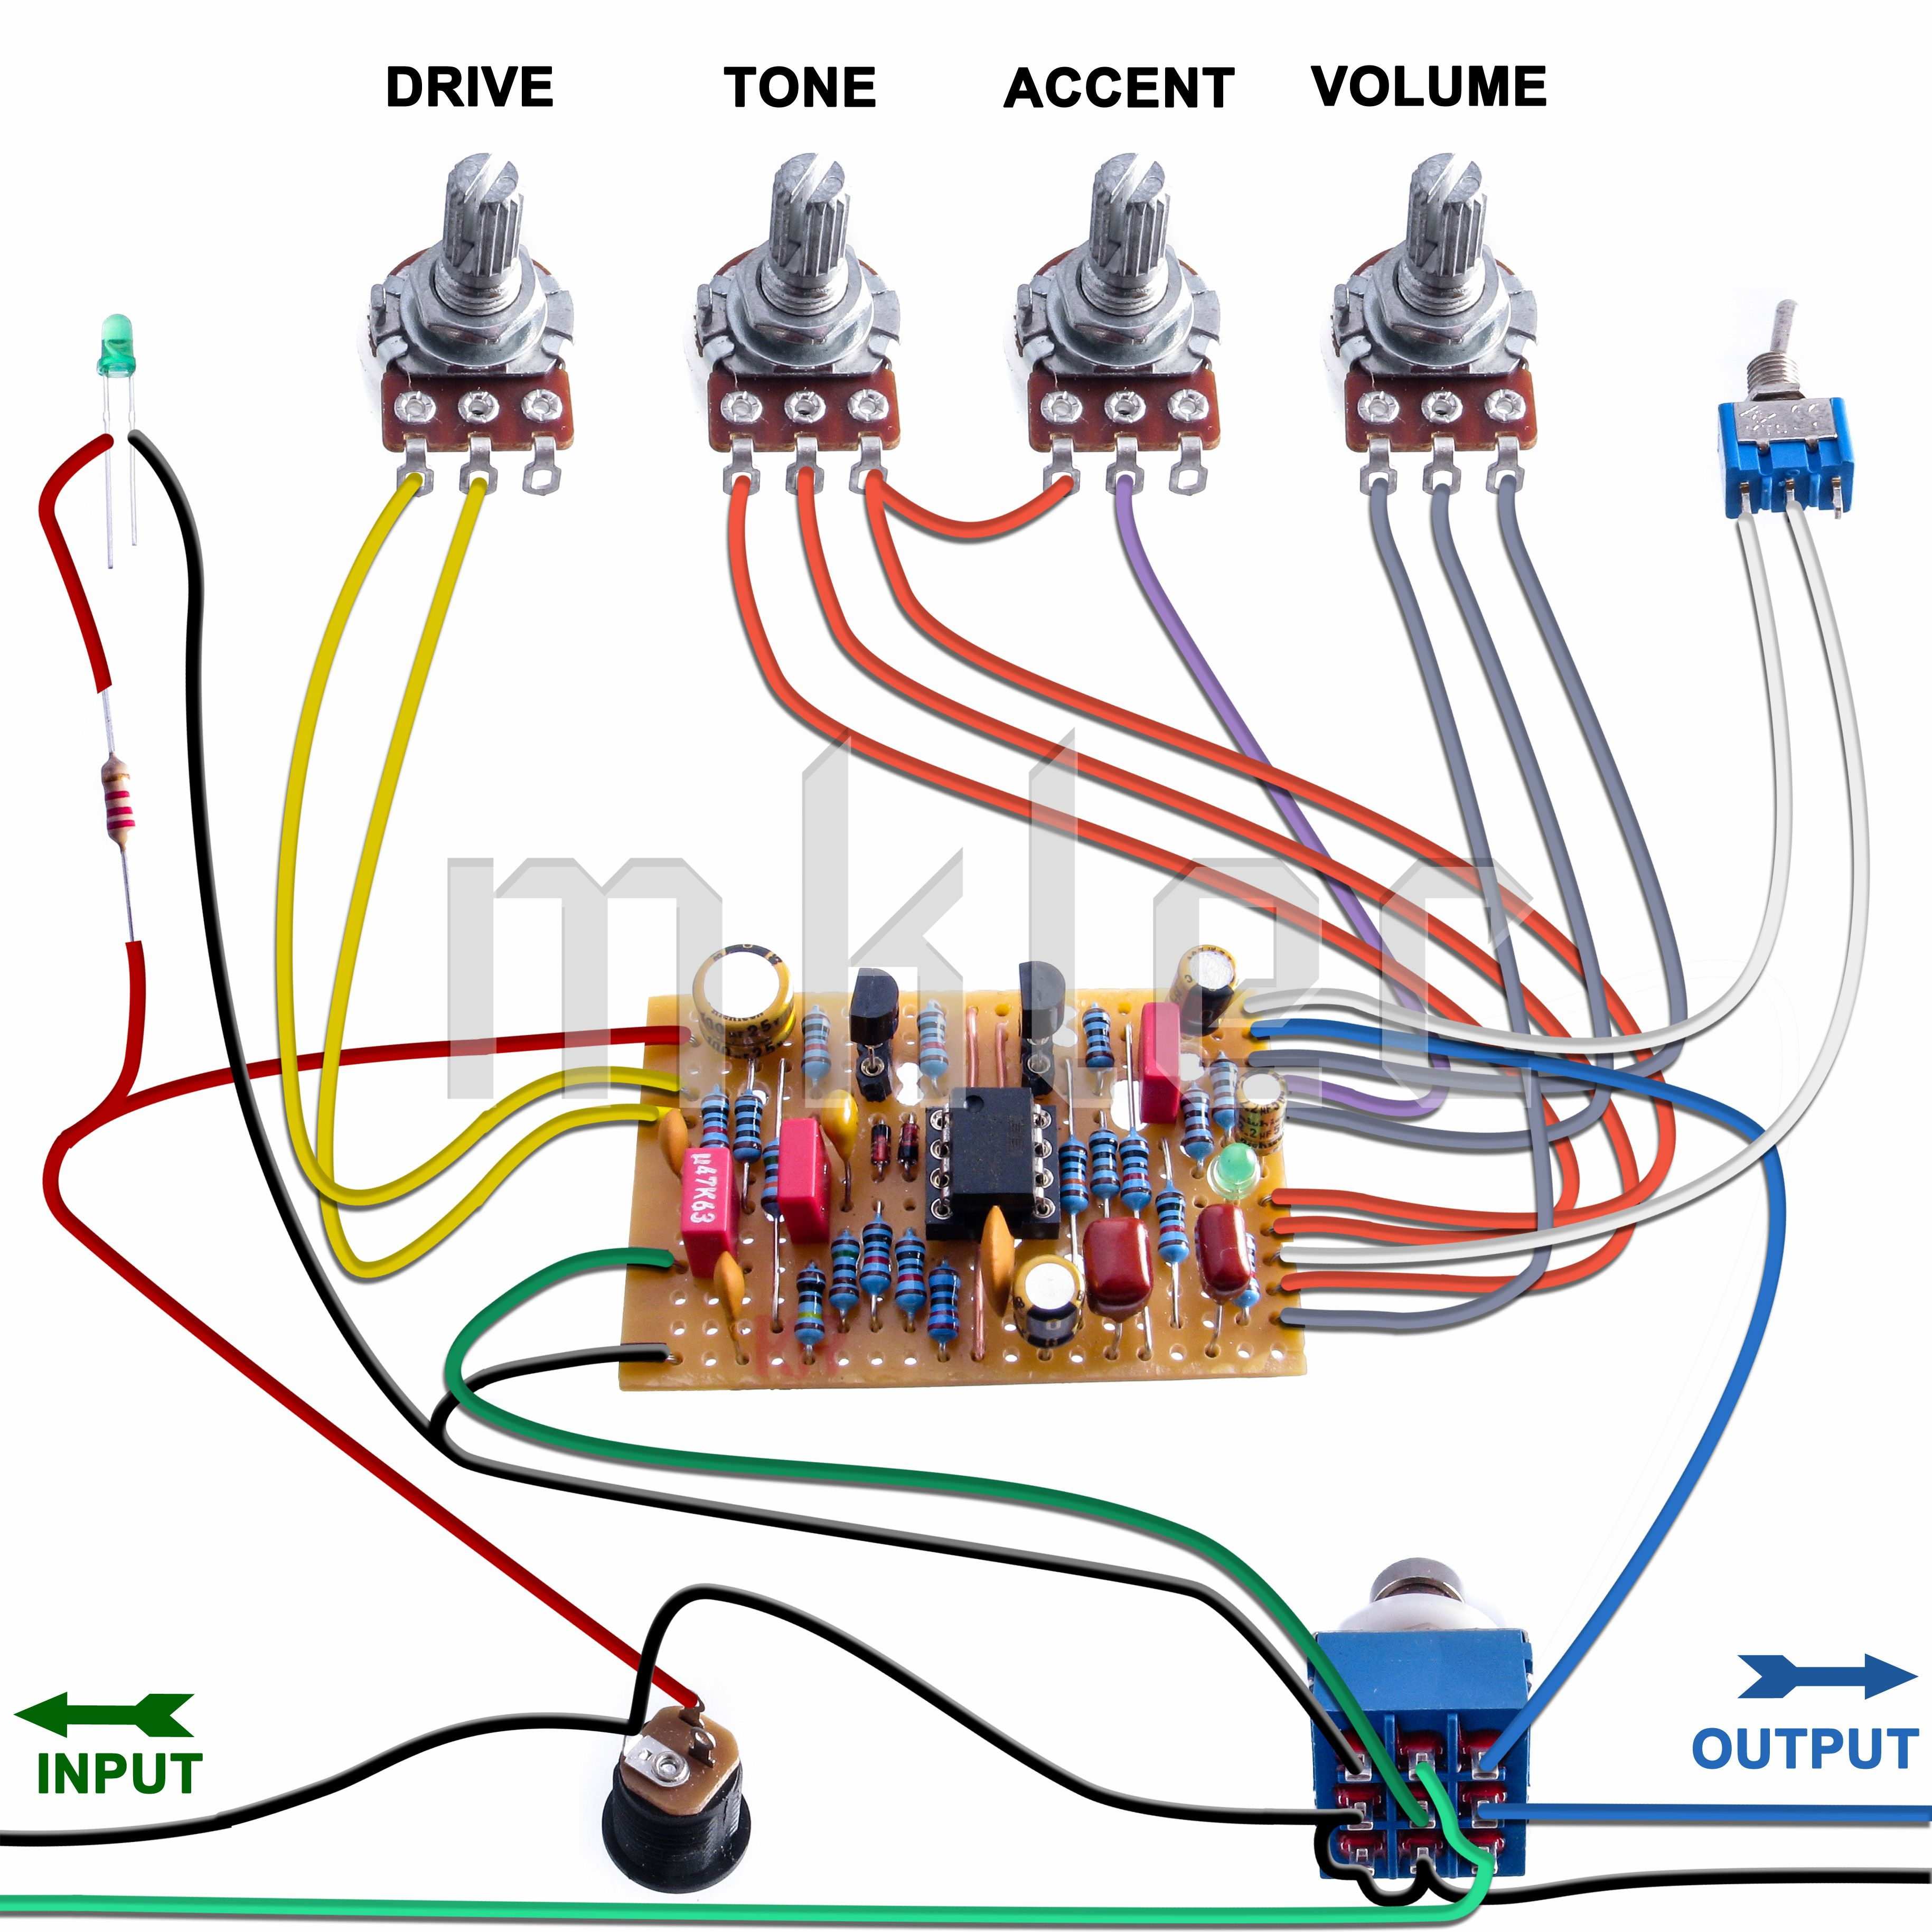 medium resolution of guitar effects pedal offboard wiring demystified guitar wiring electric guitar wiring guitar effects pedal offboard wiring